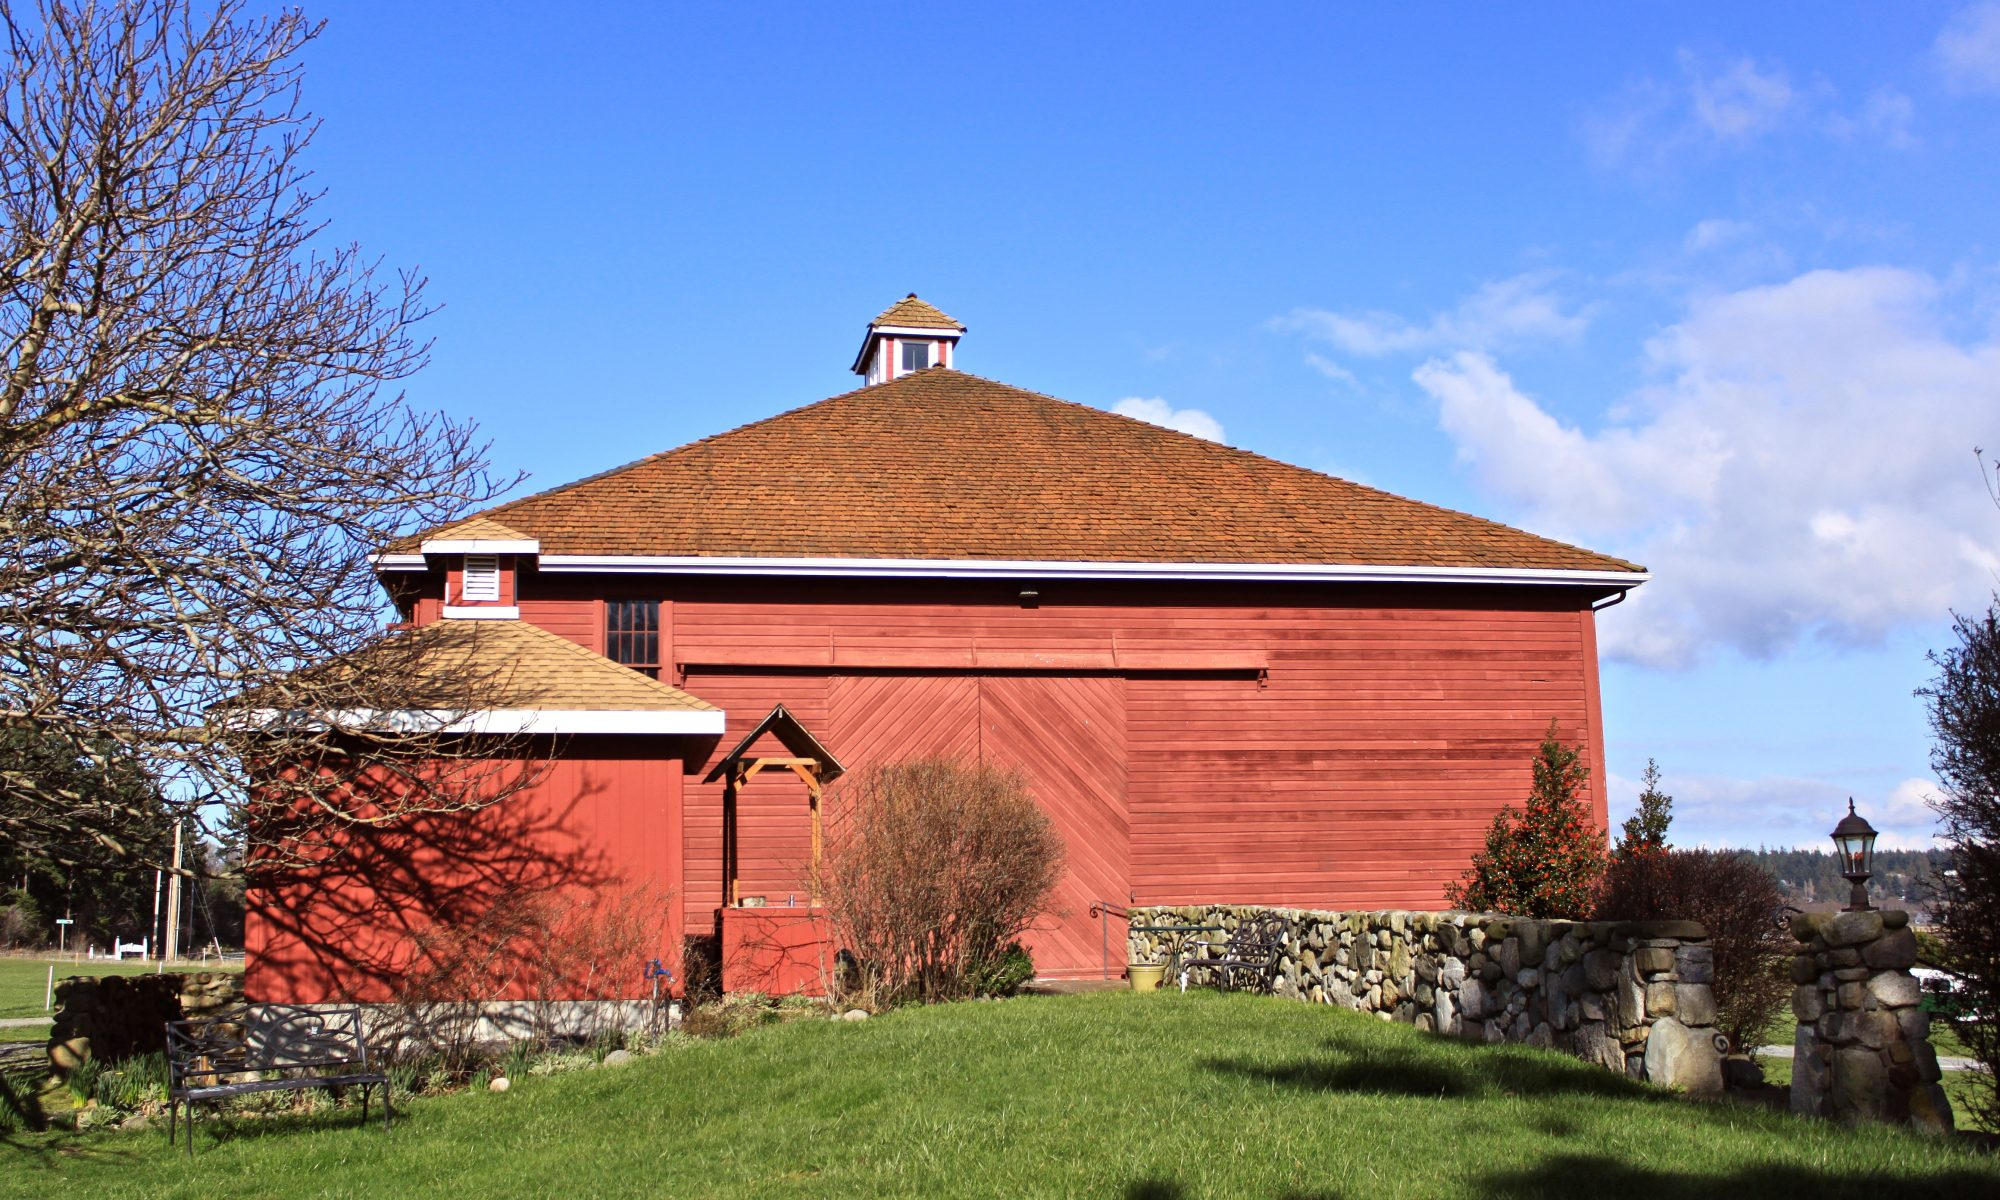 The Historic Crockett Barn - Weddings and Parties Venue - Whidbey Island - Coupeville